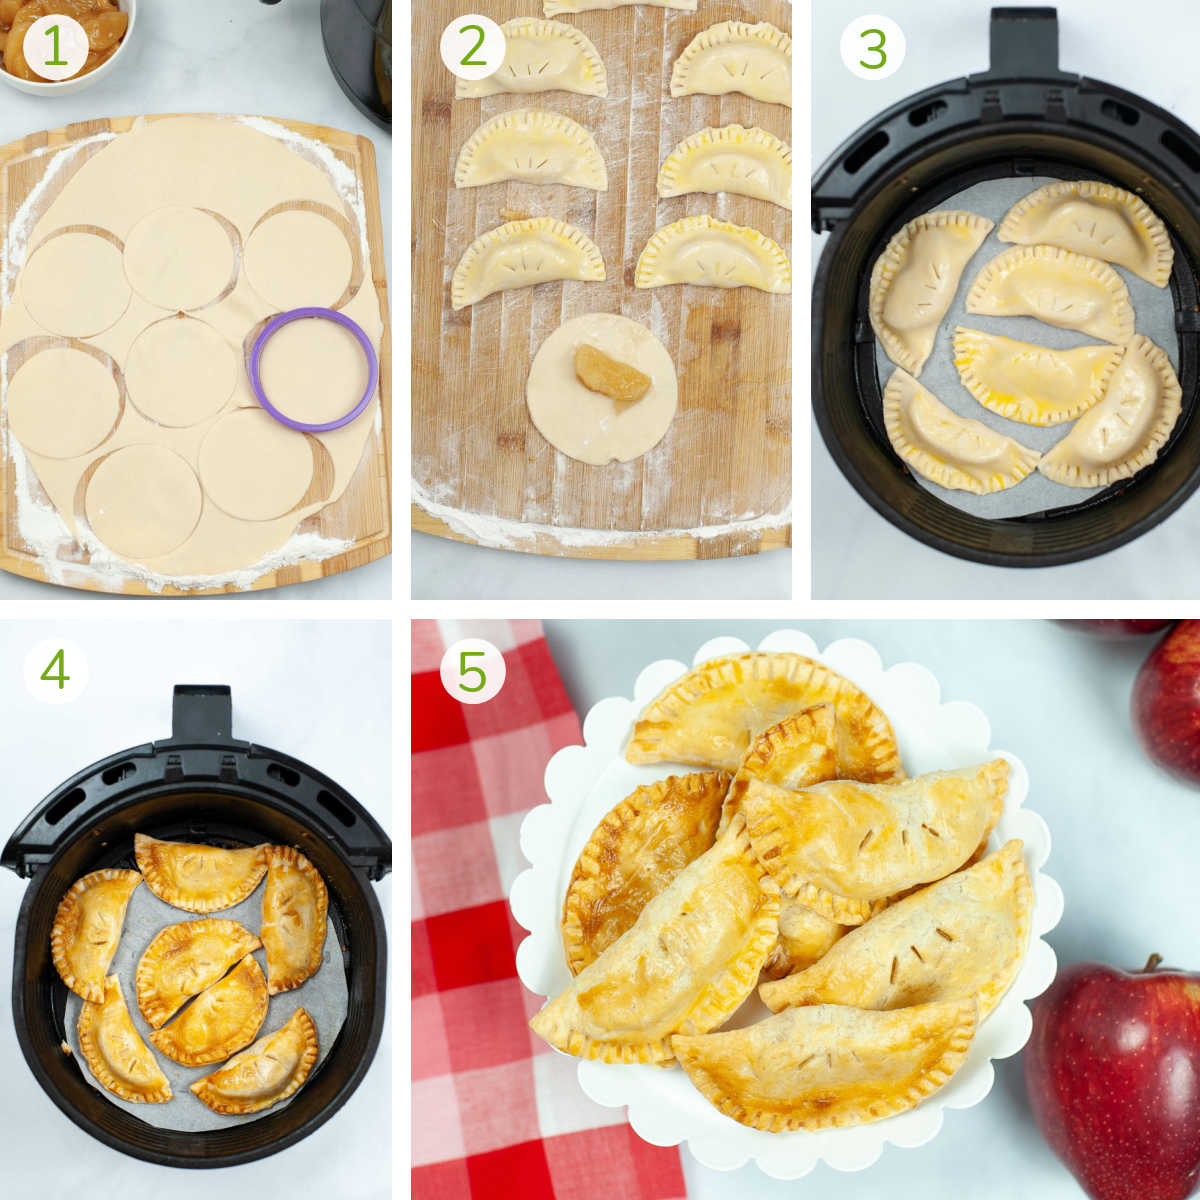 process photos showing cutting the pie crust with a biscuit cutter, adding the pie filling and air frying.